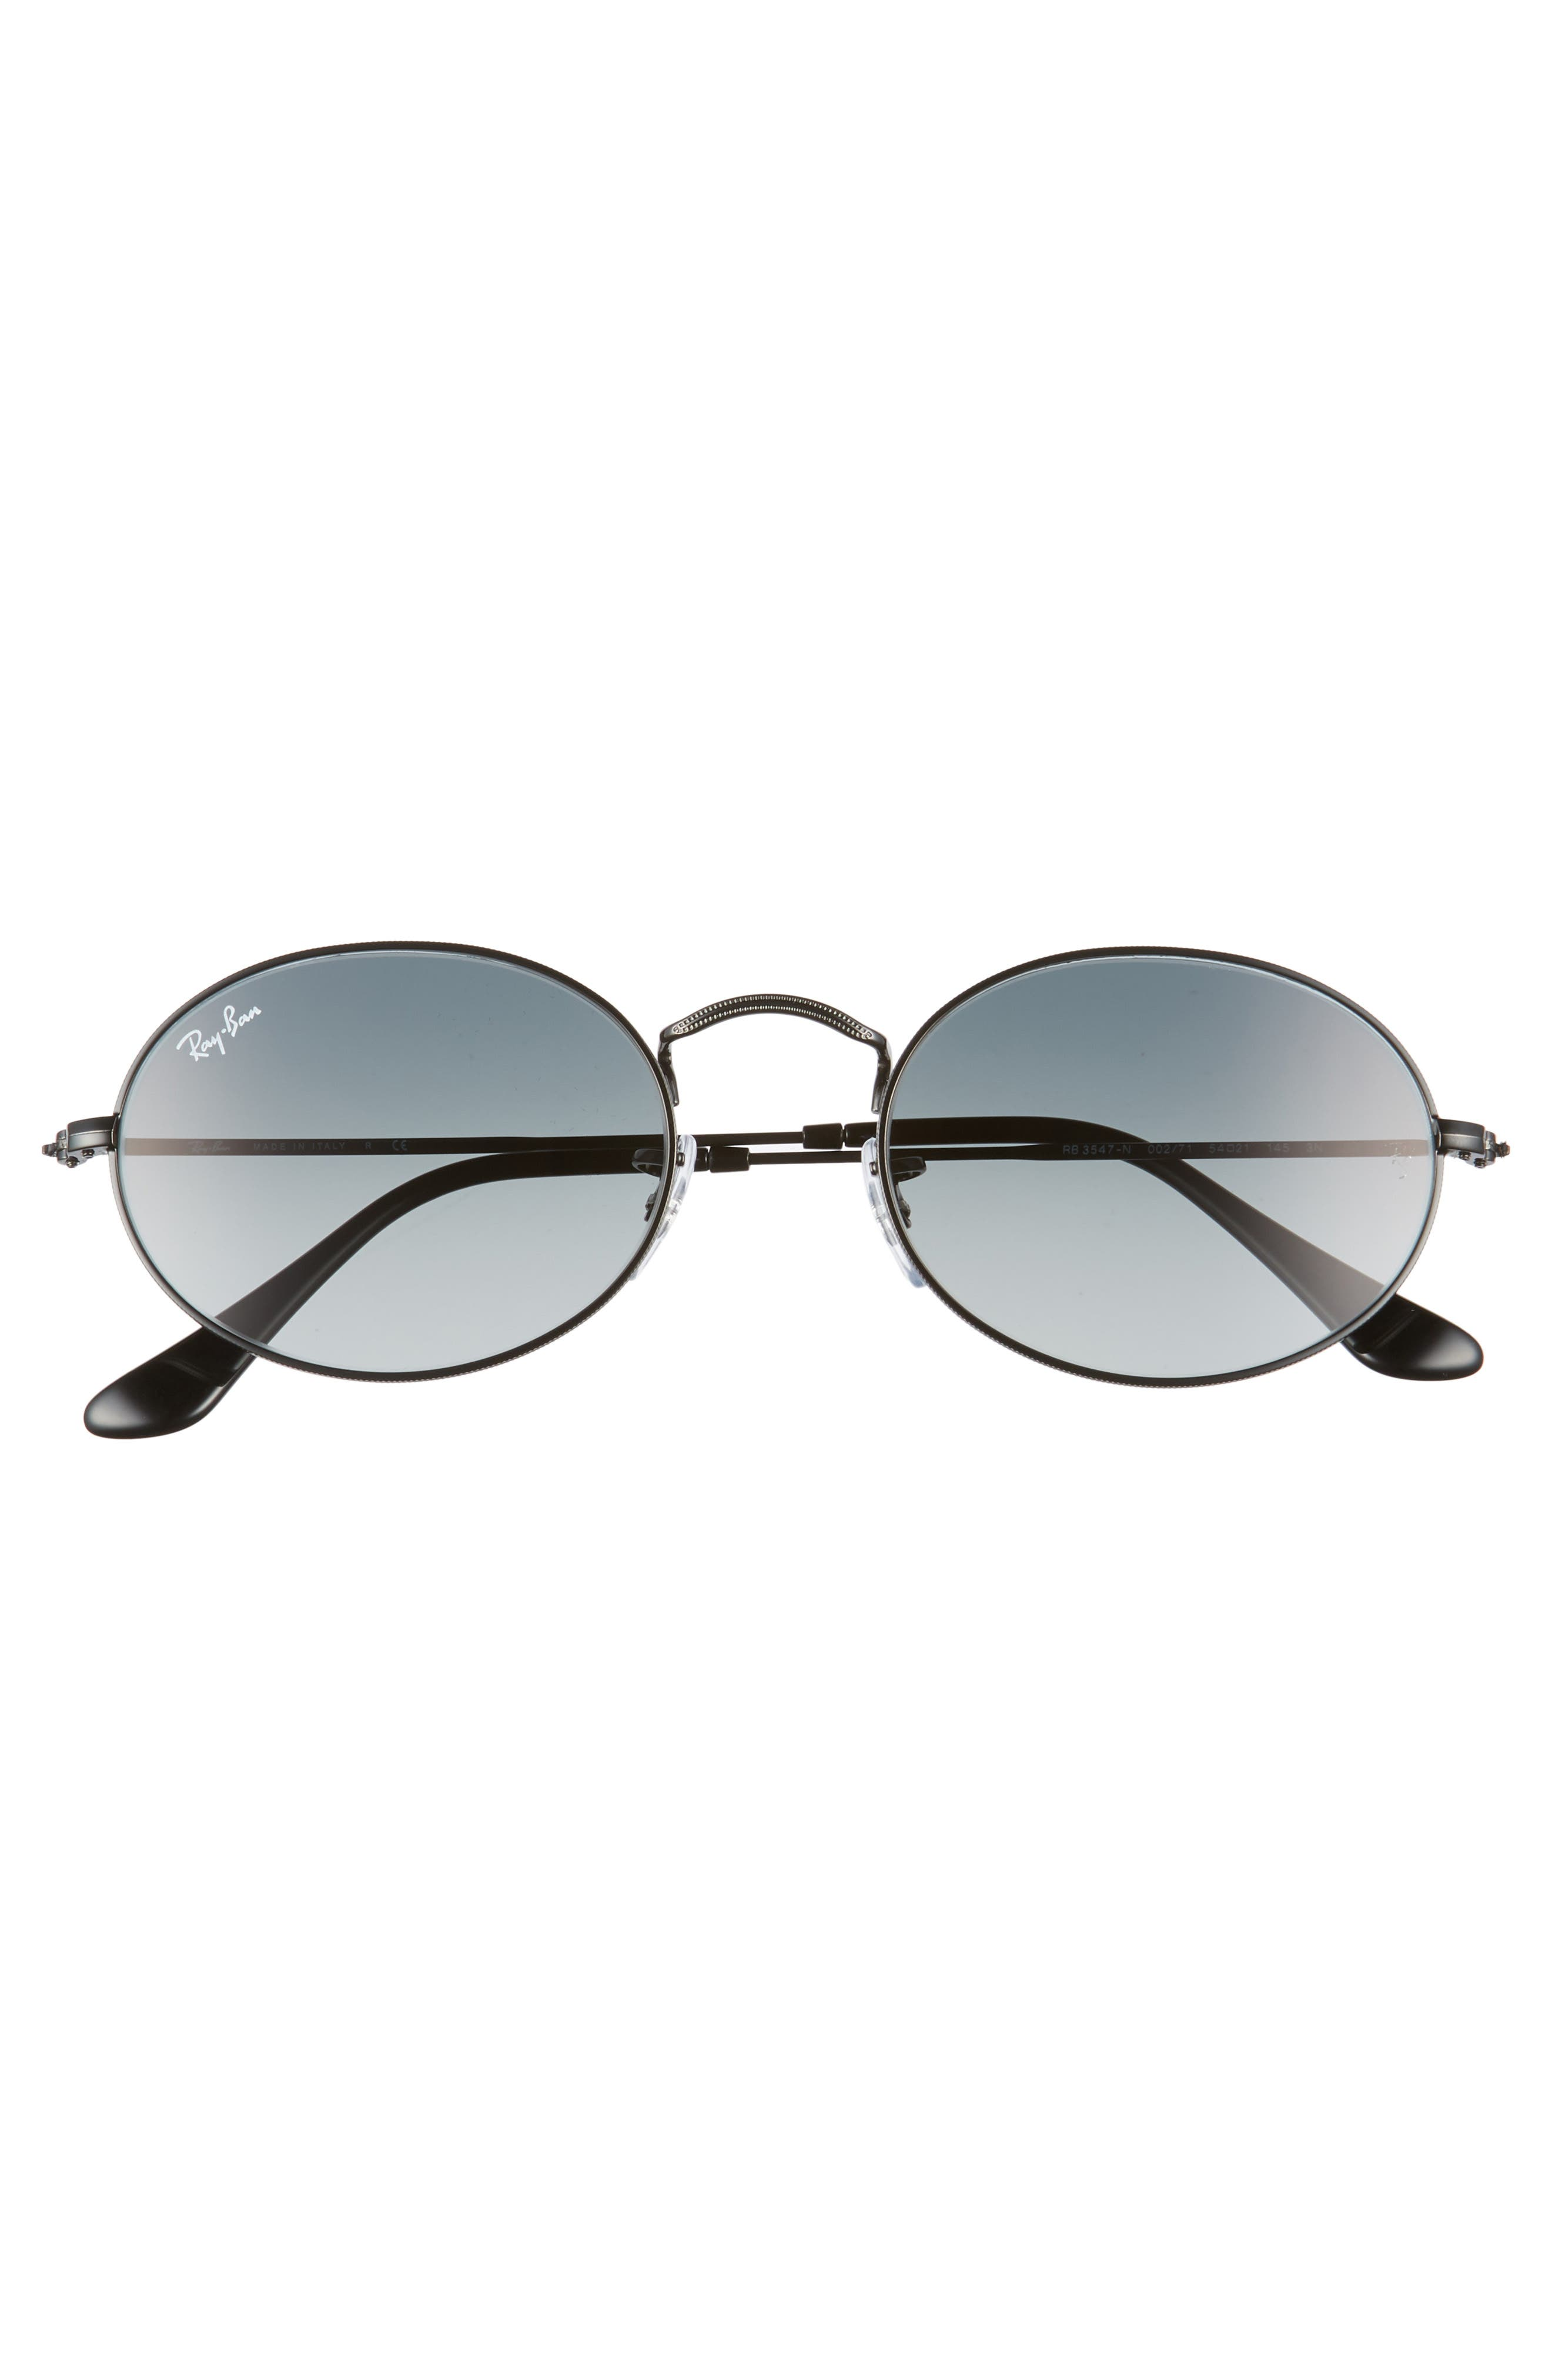 54mm Oval Sunglasses,                             Alternate thumbnail 3, color,                             Black